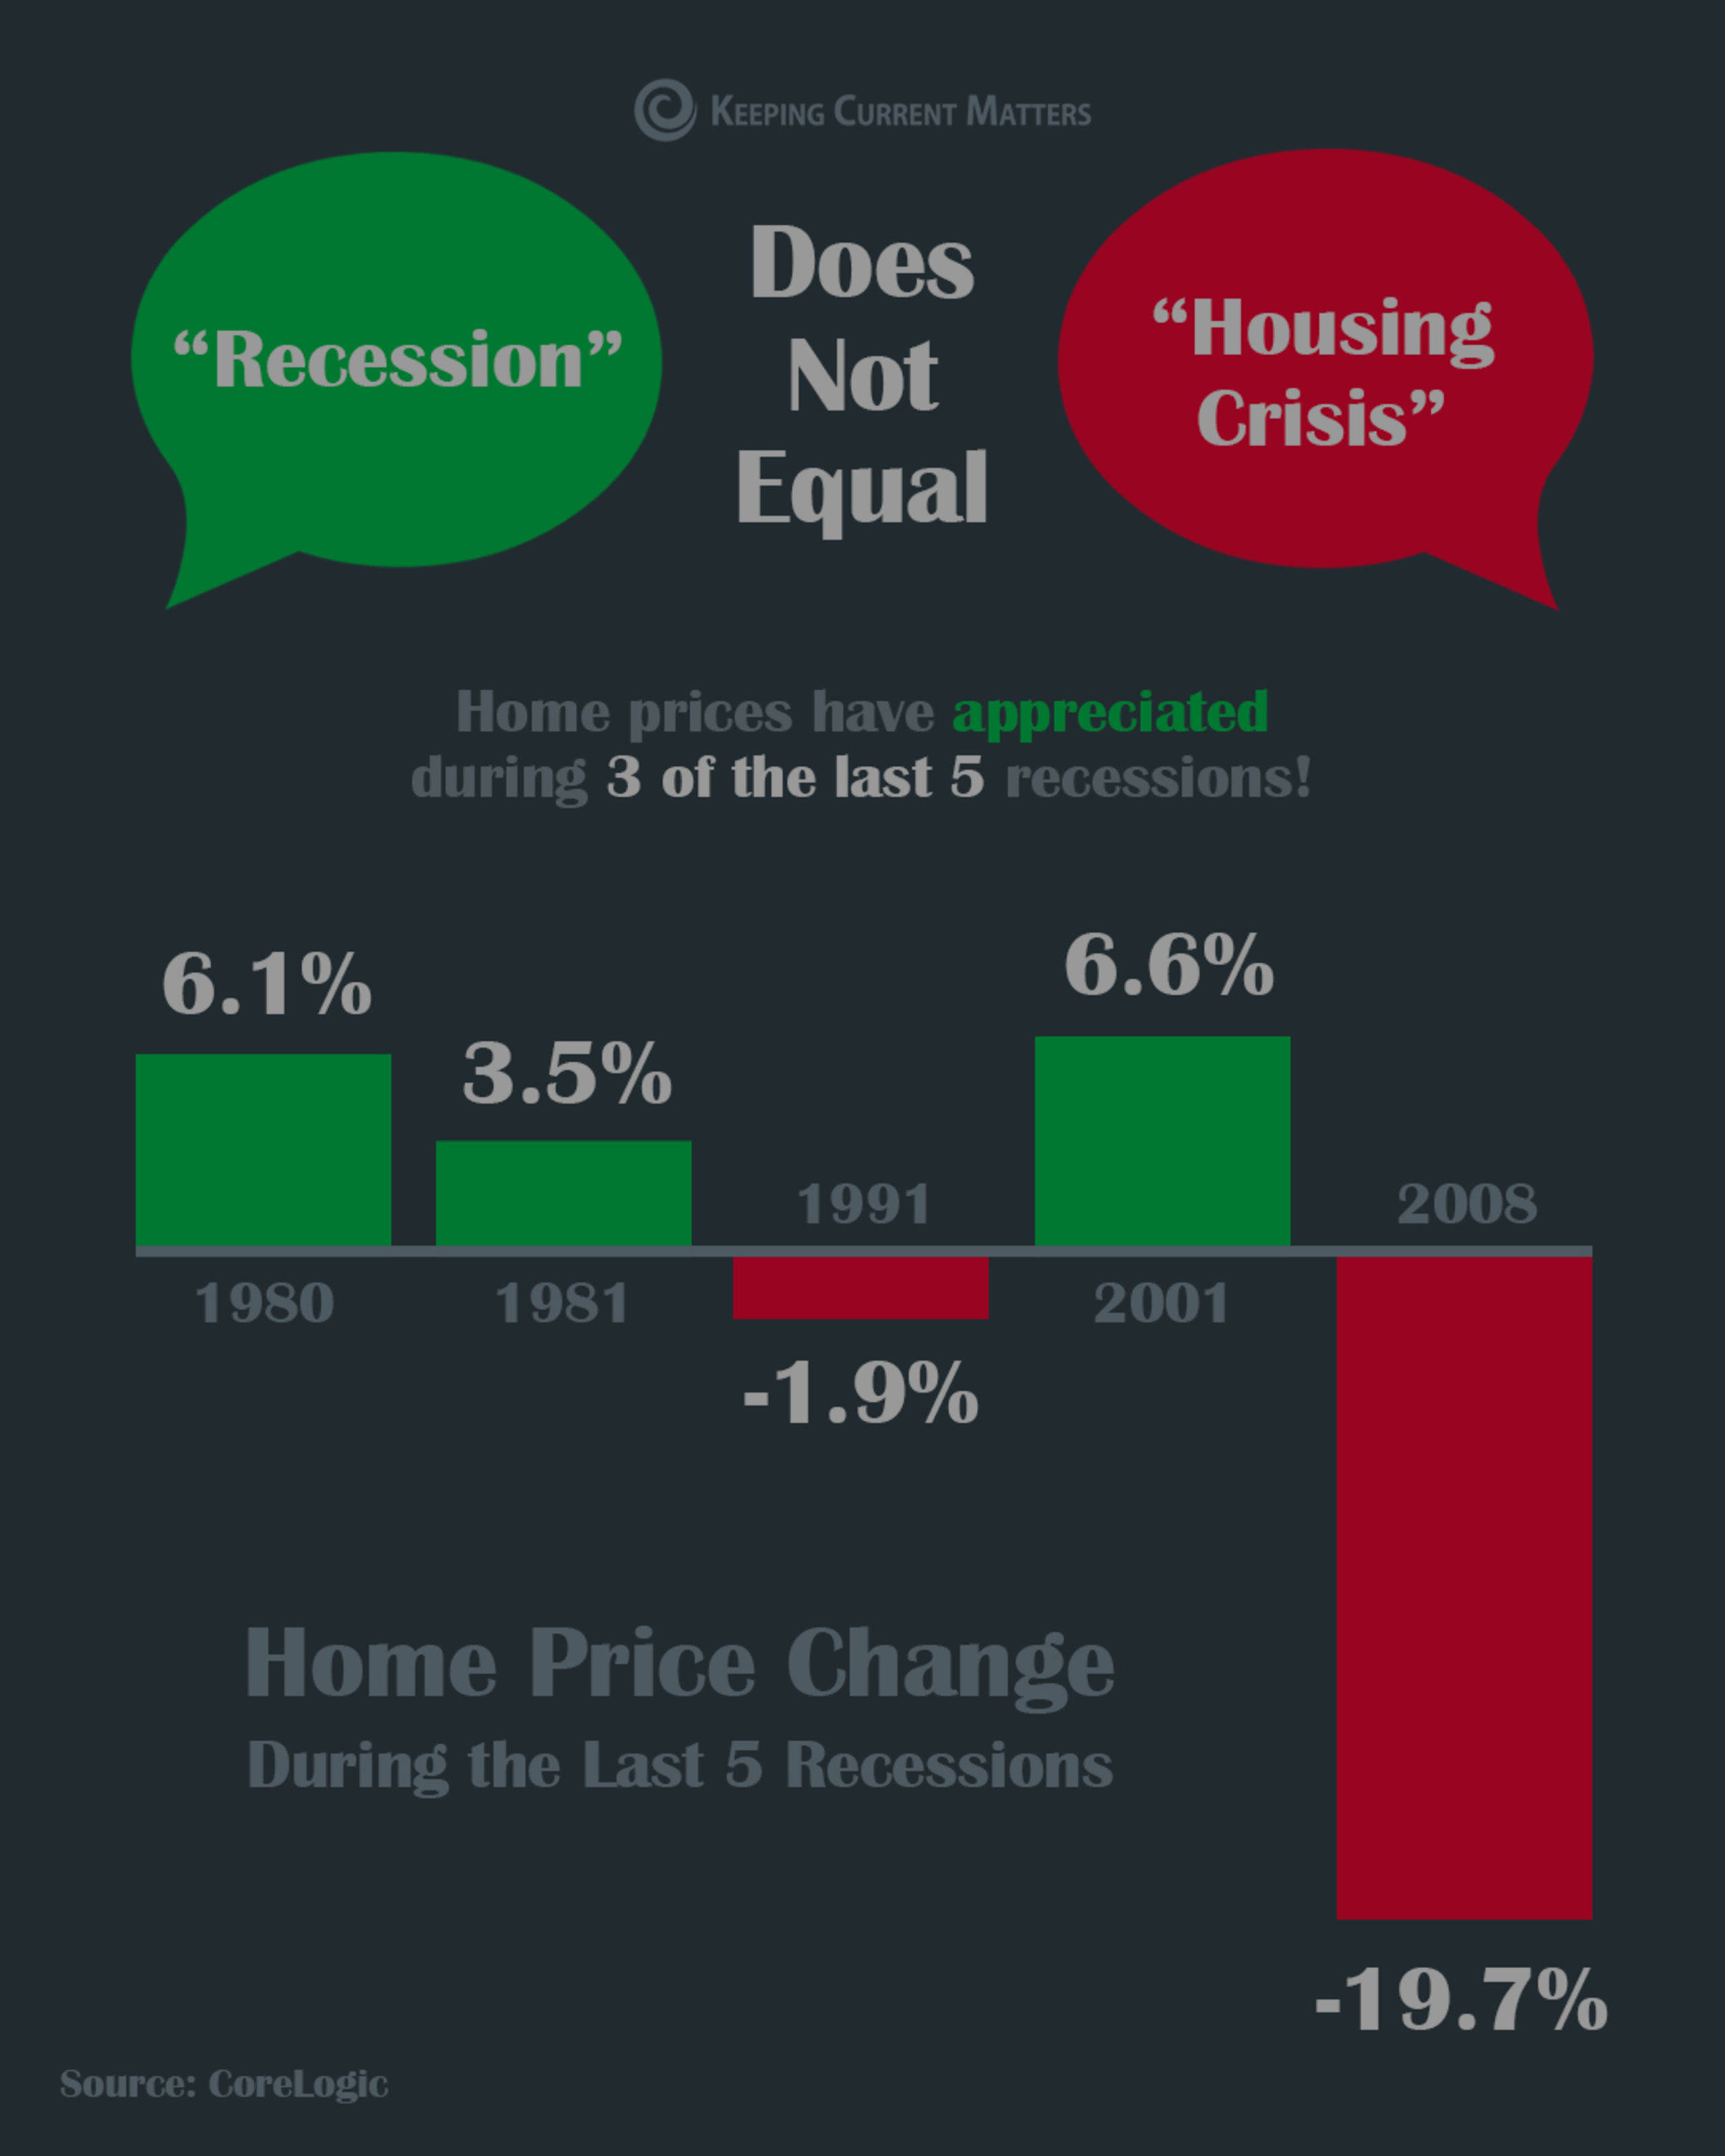 A Recession Does Not Equal a Housing Crisis (INFOGRAPHIC)